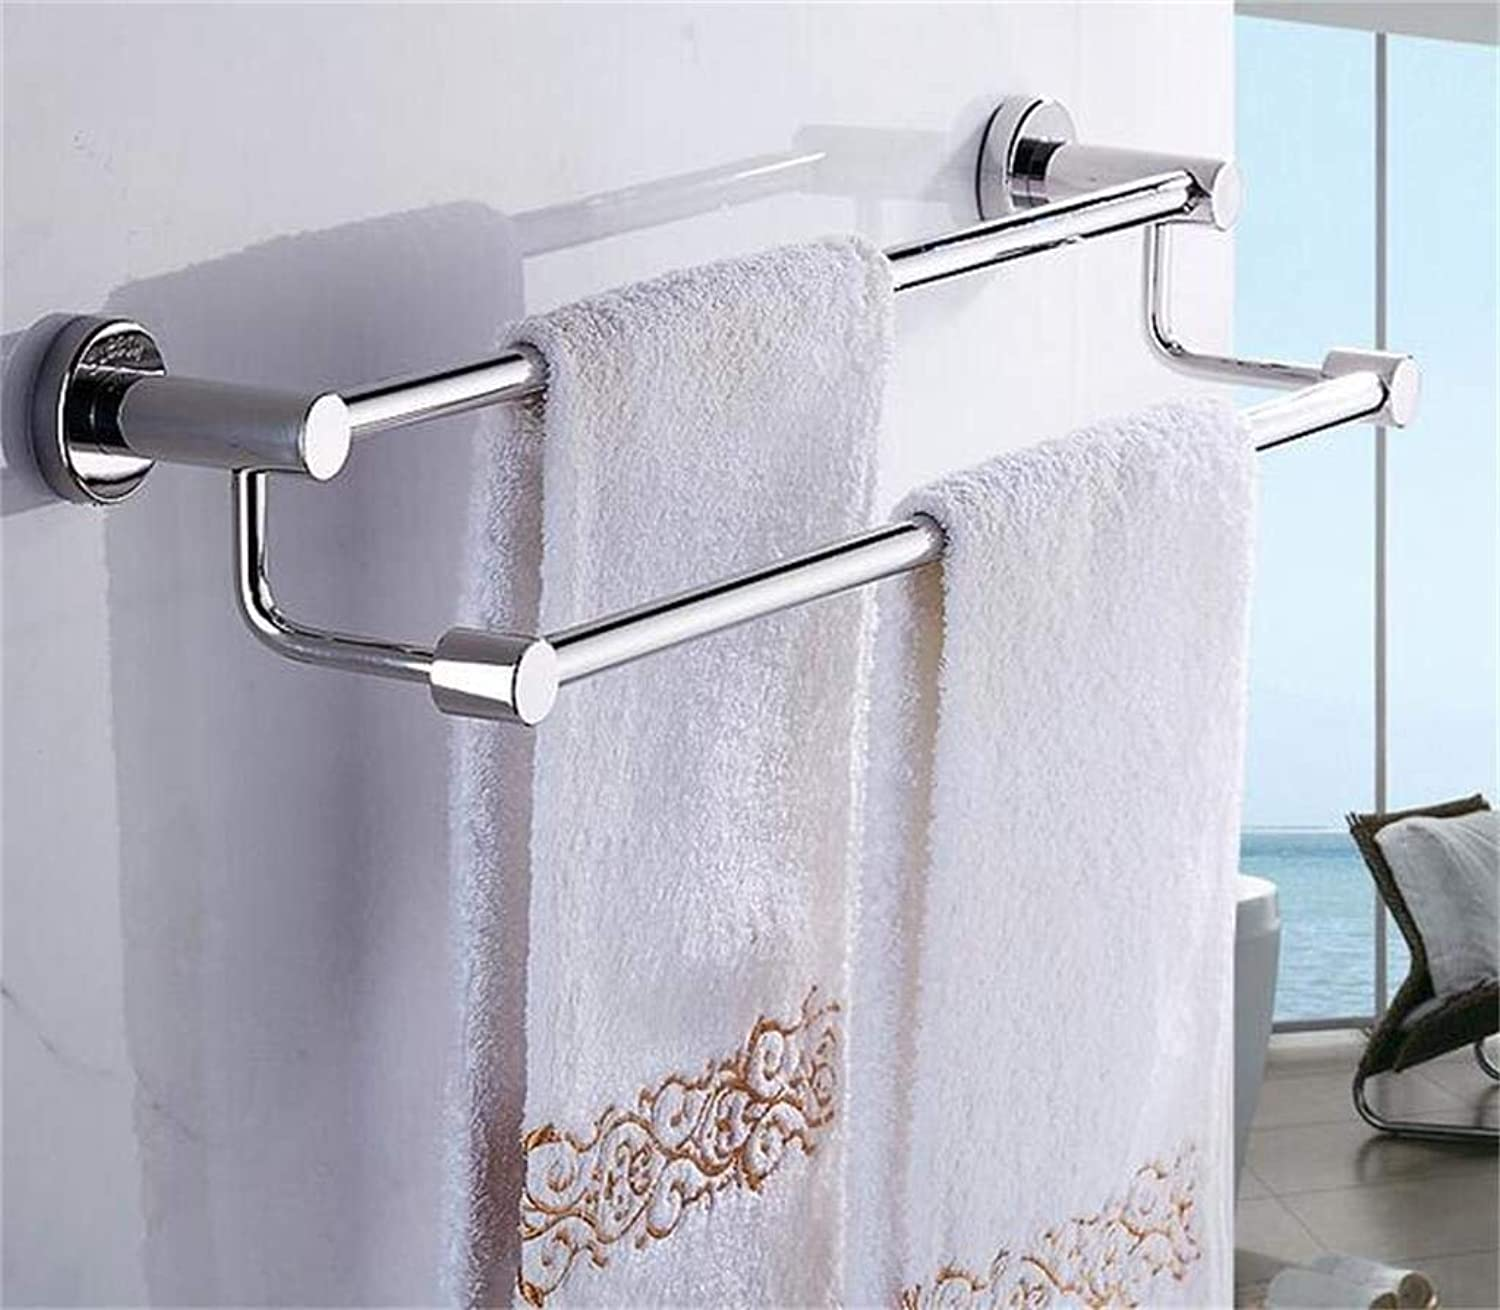 EQEQ Stainless Steel Shelving in Bathroom Bathroom Storage Rack Shelf Propeller Embedded Bathroom